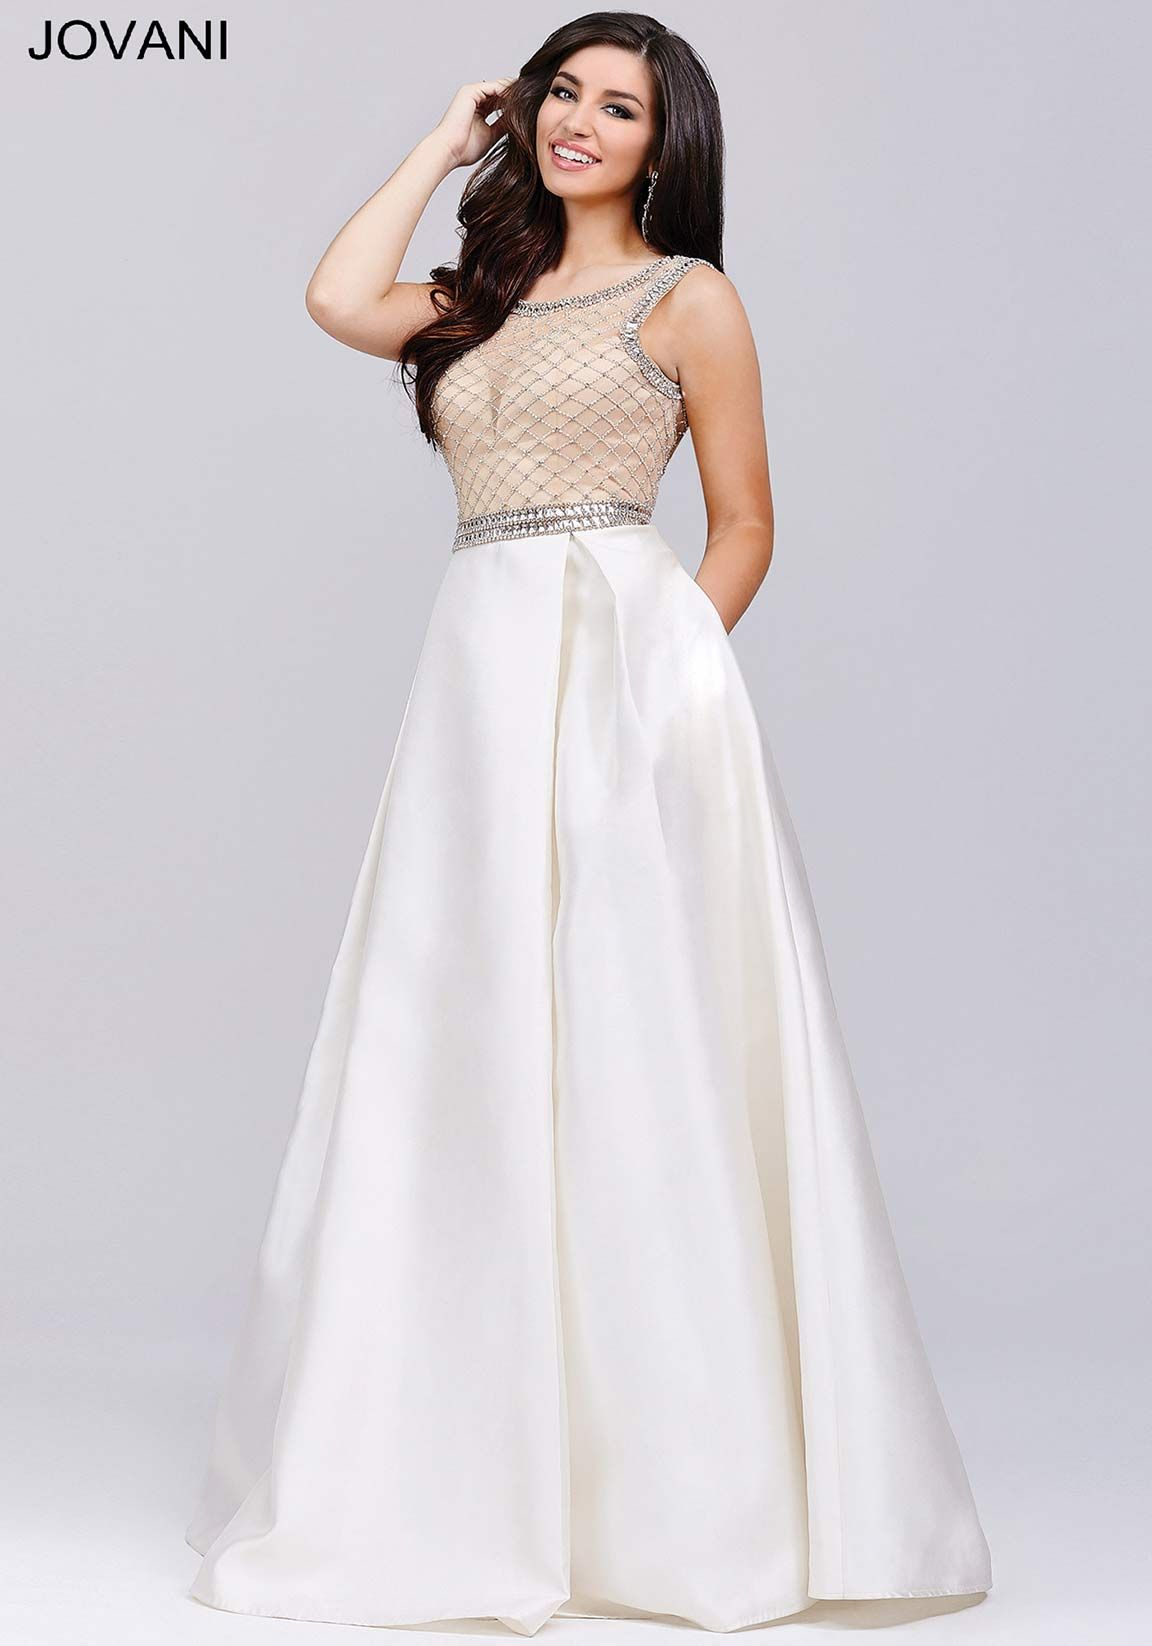 Prom dresses online by jovani always best dressed gala or prom